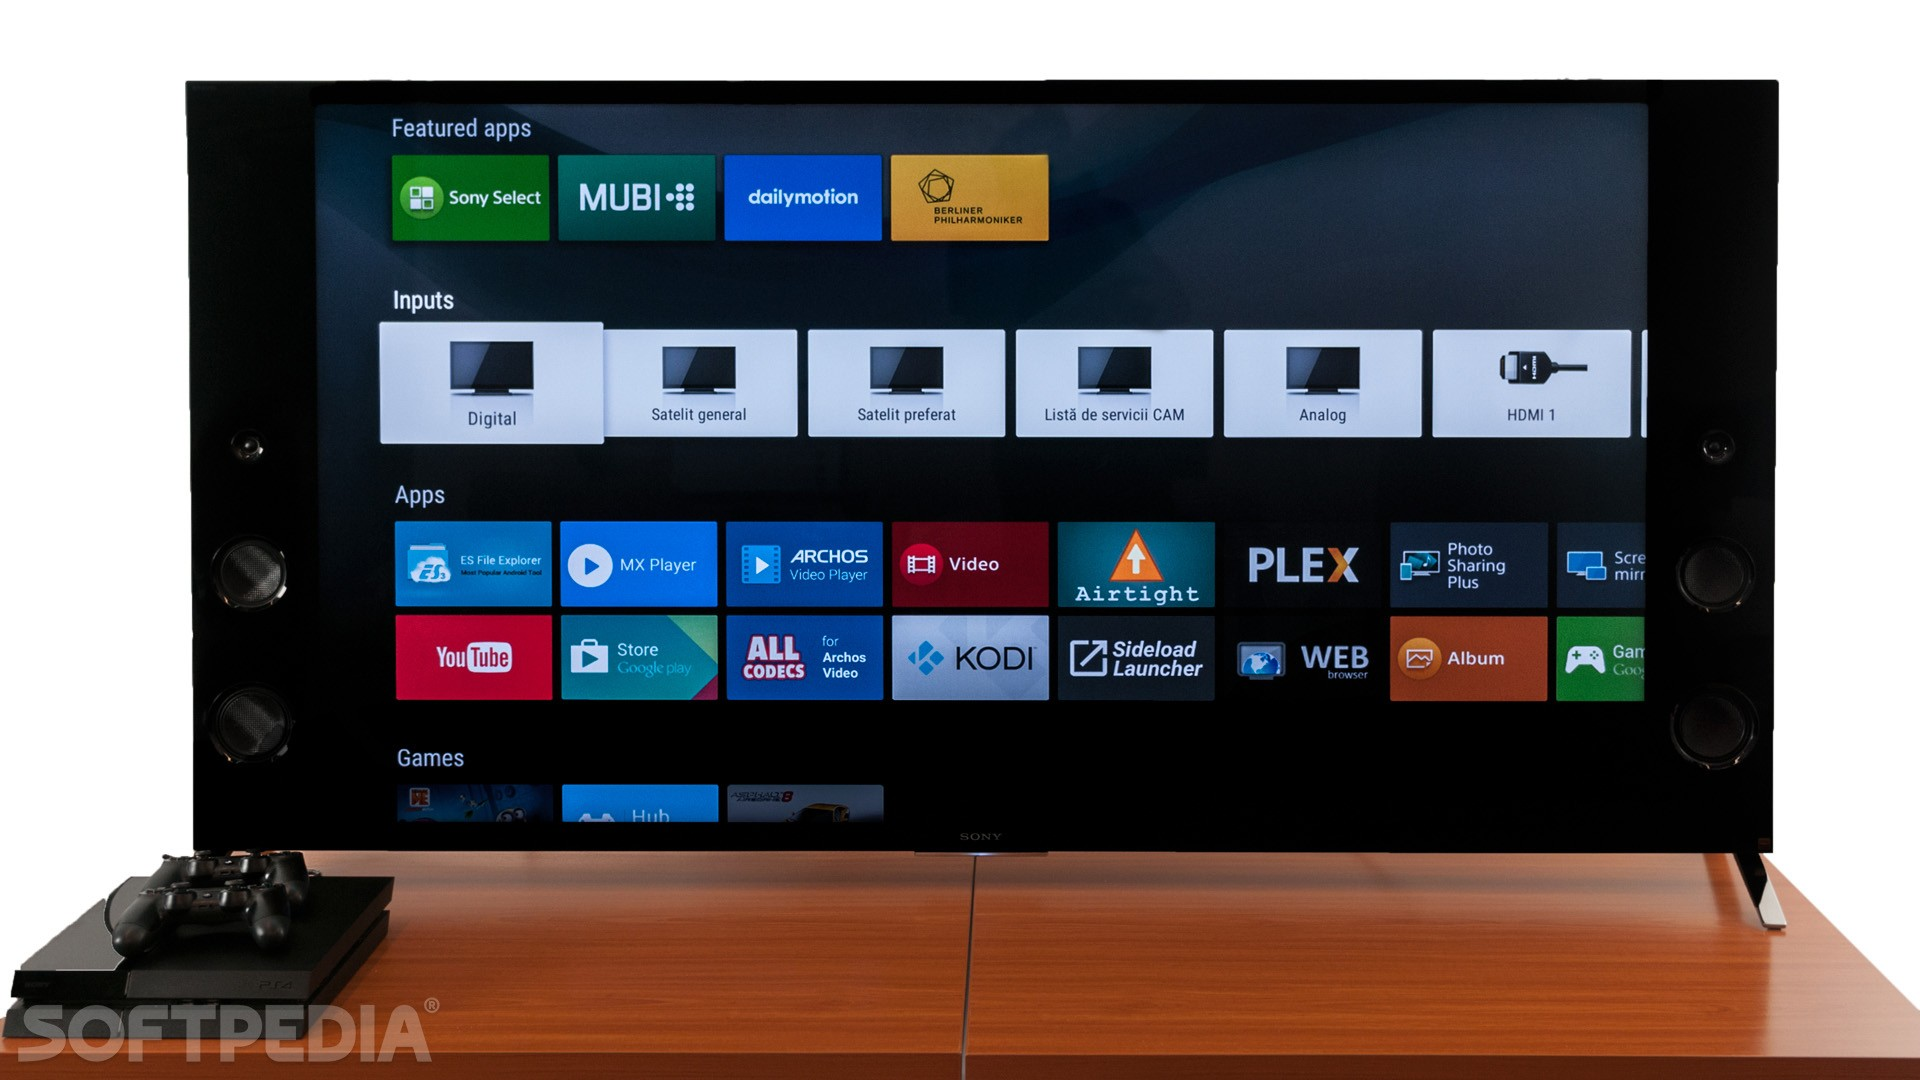 Sony X93C Android TV Review - Size Does Not Matter